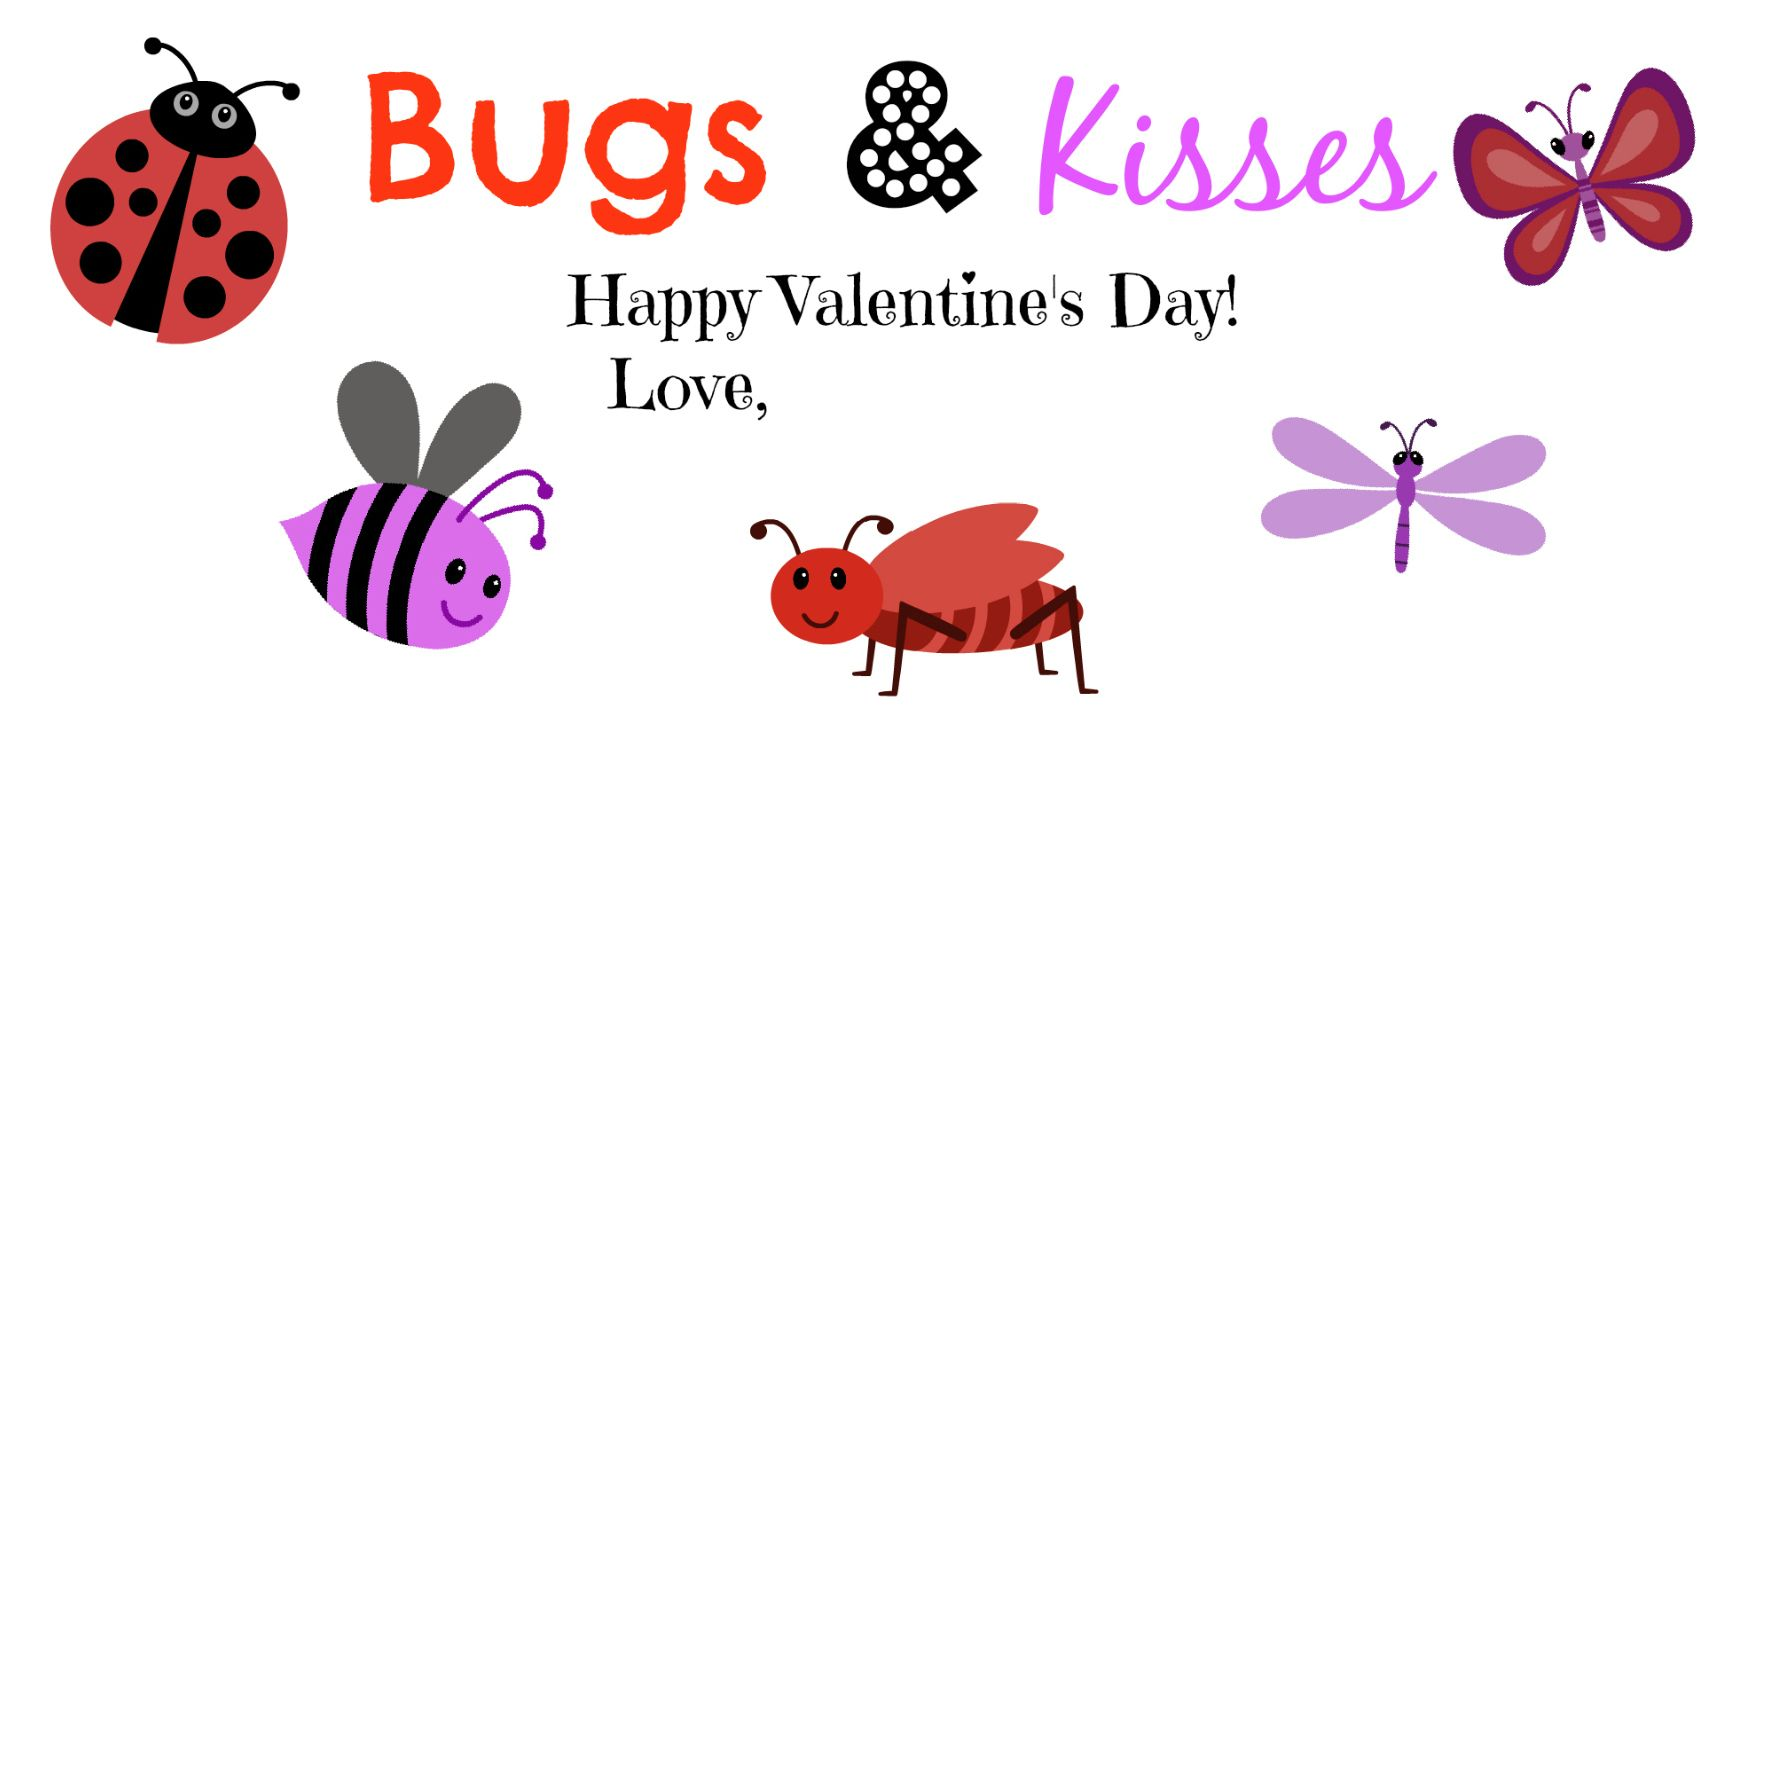 photograph regarding Bugs and Kisses Printable named Insects Kisses! Valentines Working day Valentine working day playing cards